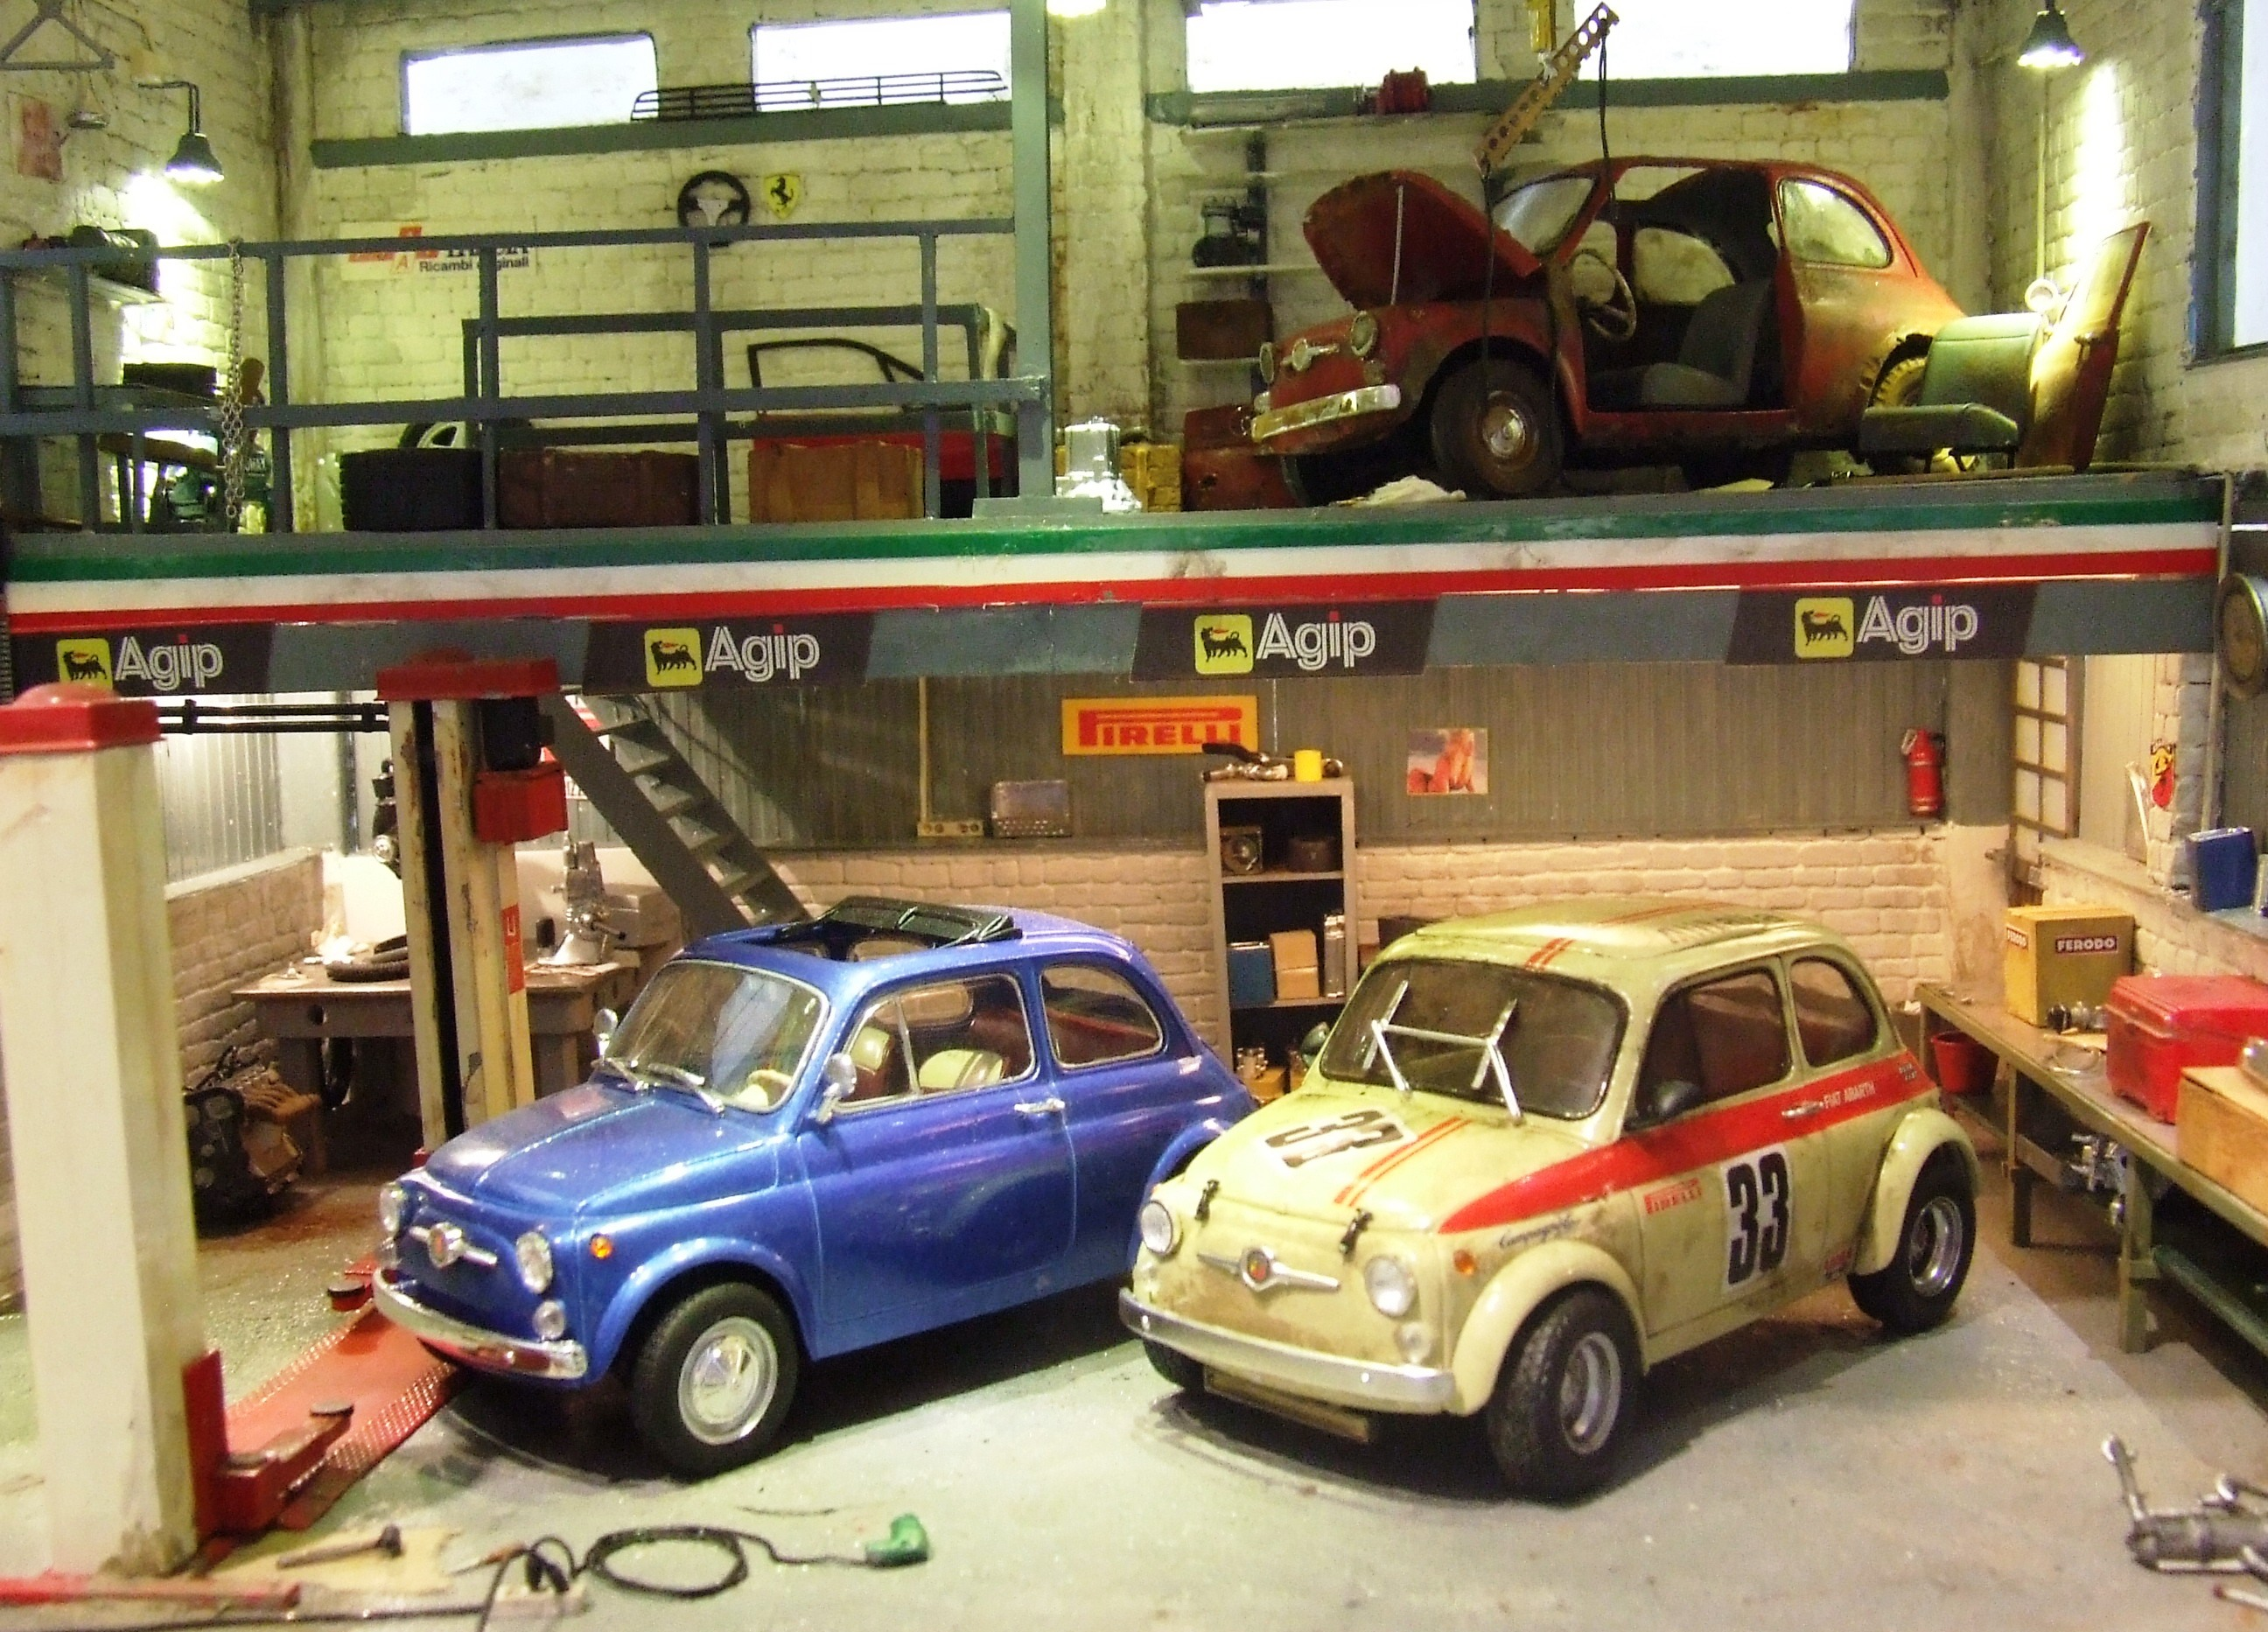 Fiat abarth garage 015 for Garage fiat 500